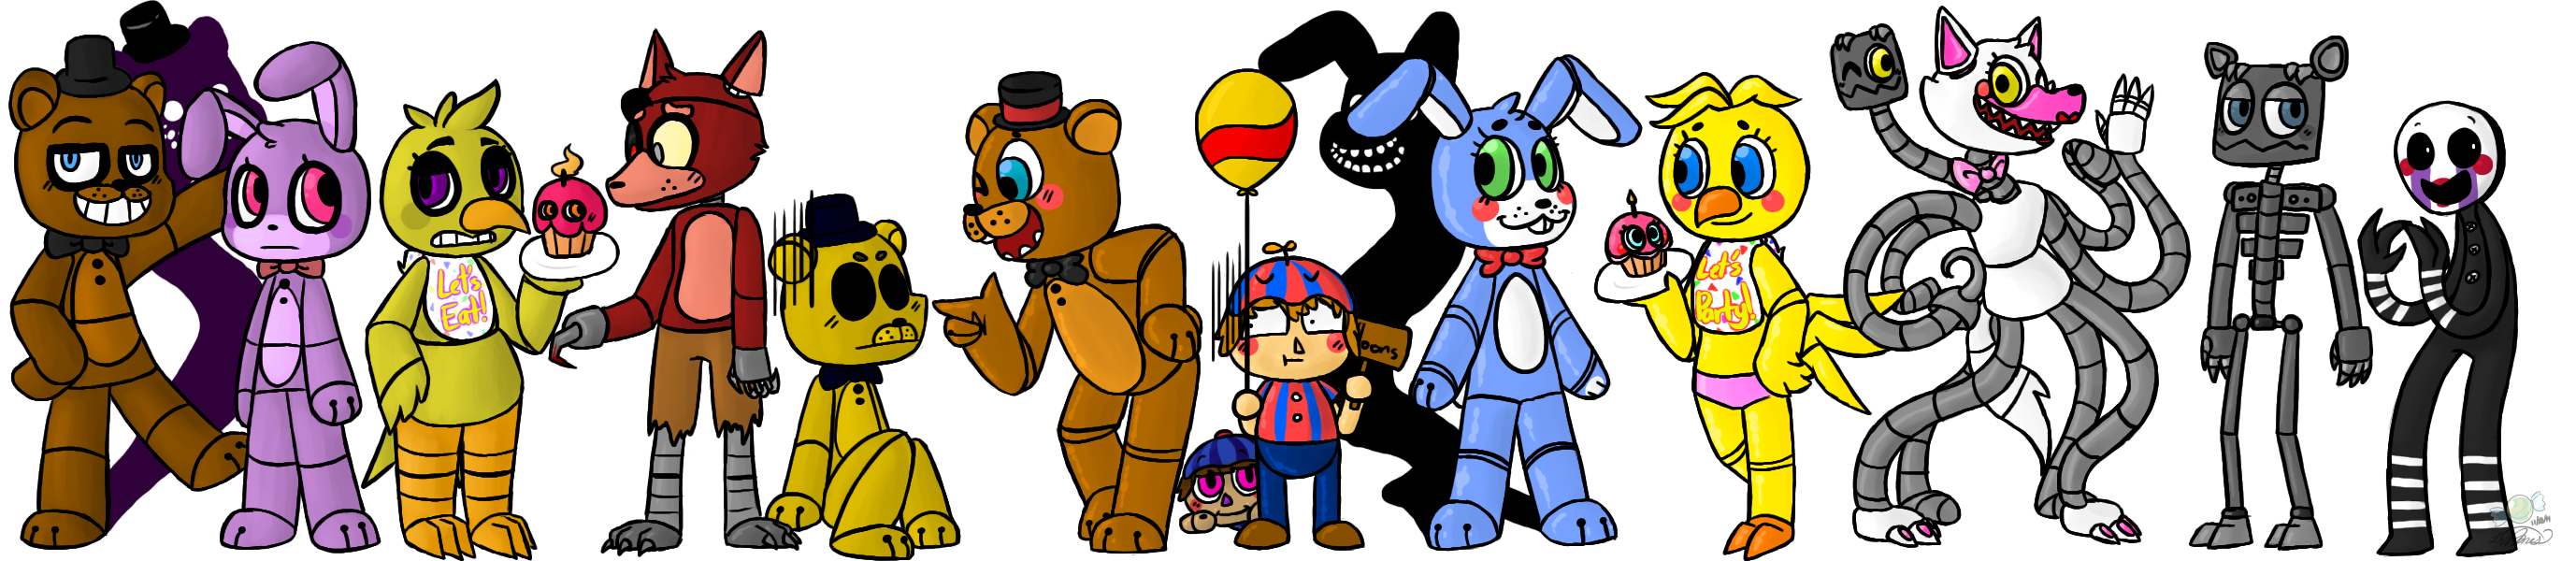 Five nights at freddy s 2 by candykidneys on deviantart